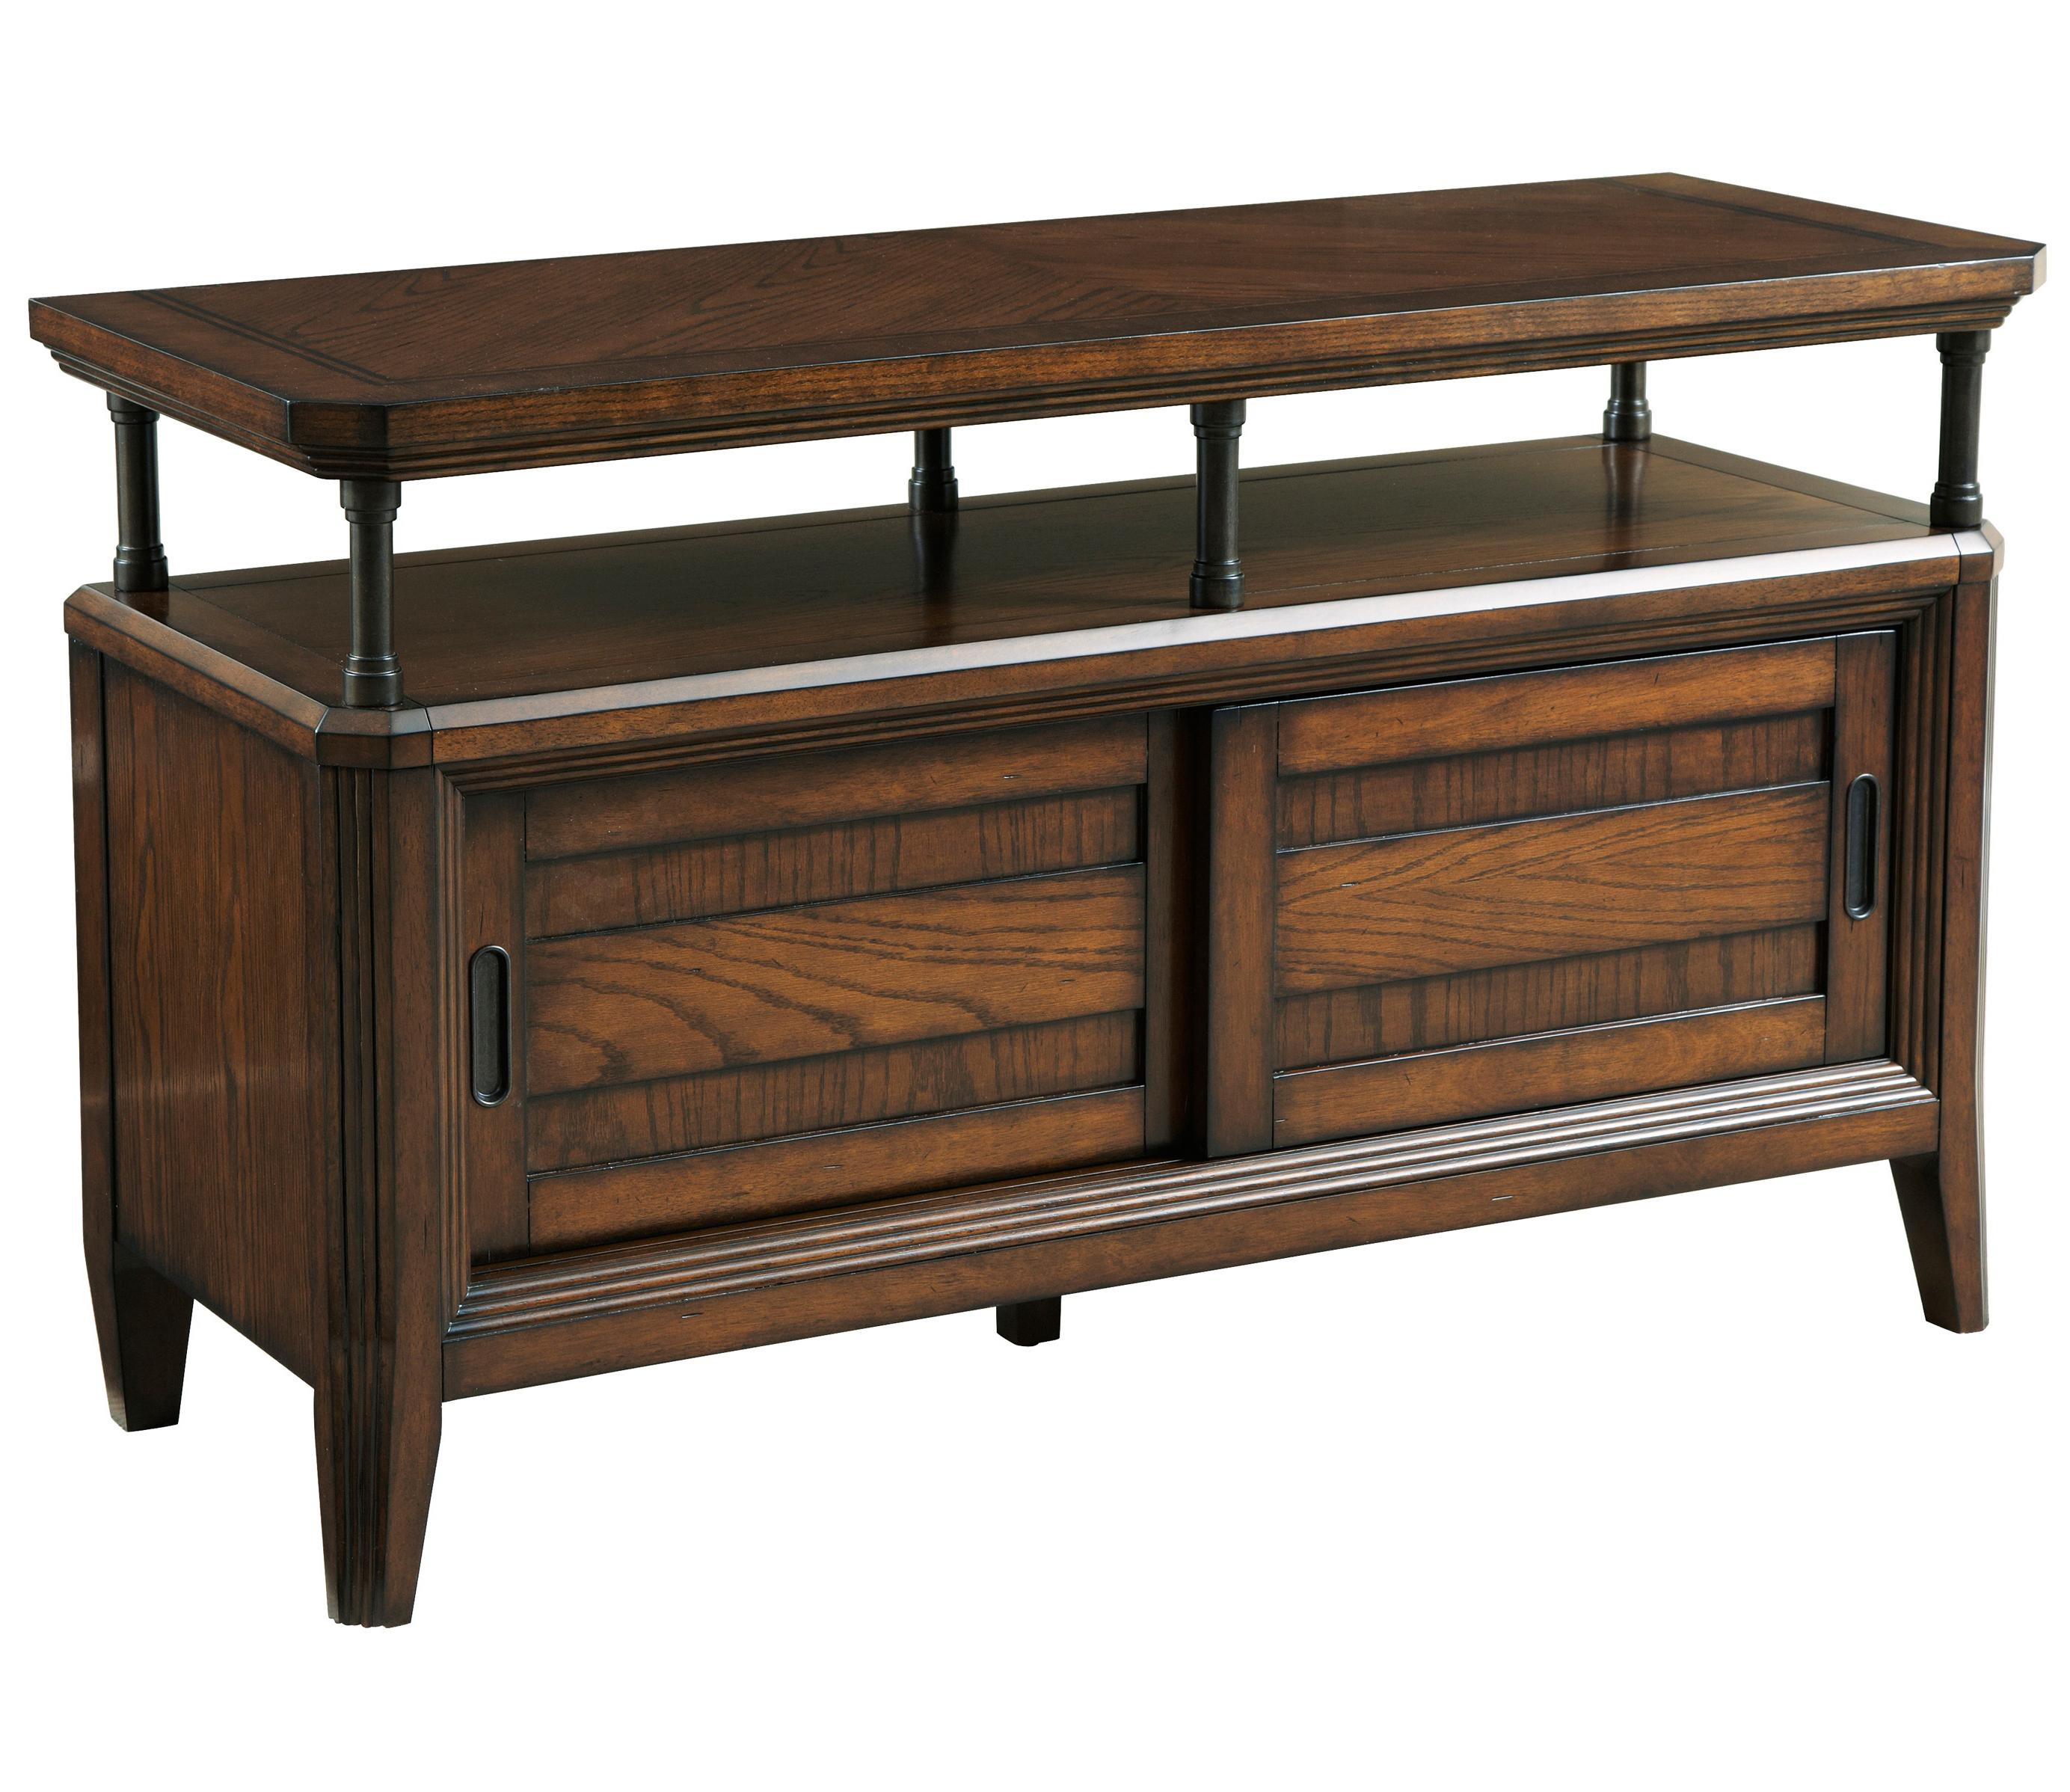 Broyhill Furniture Estes Park Console Table - Item Number: 4364-009